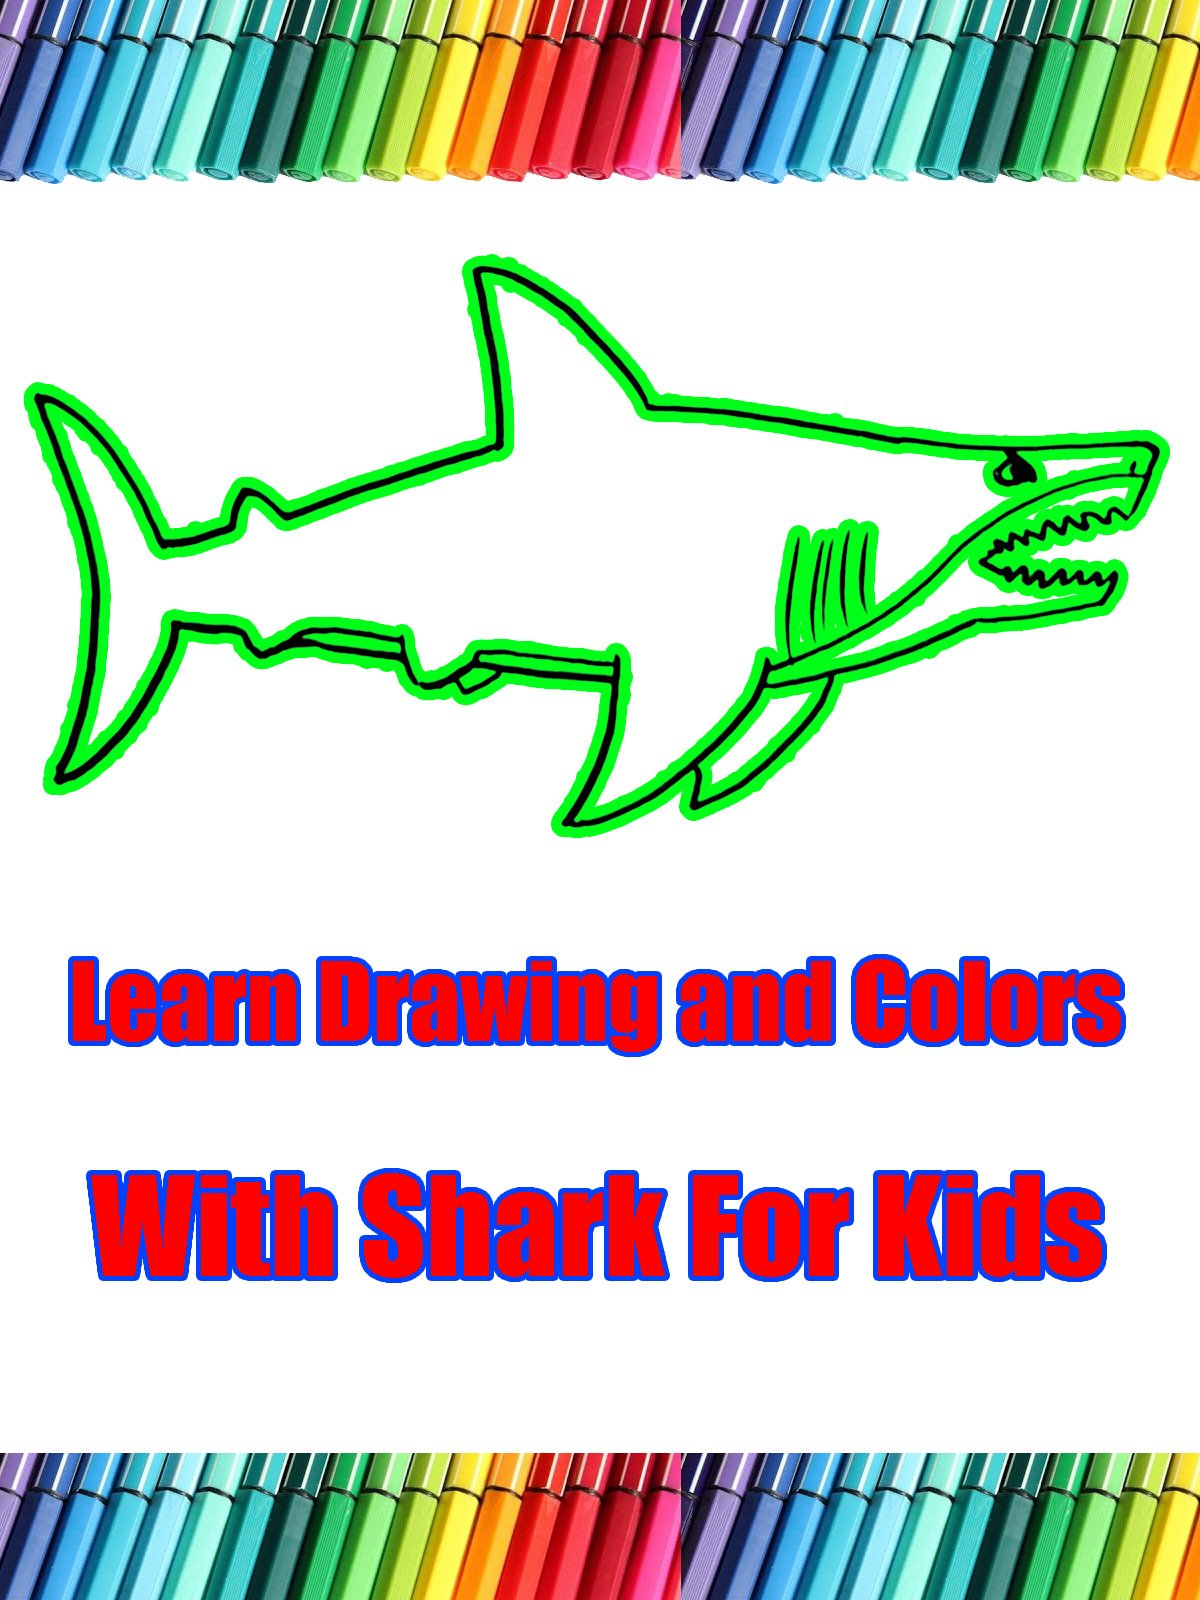 Learn Drawing and Colors With Shark For Kids